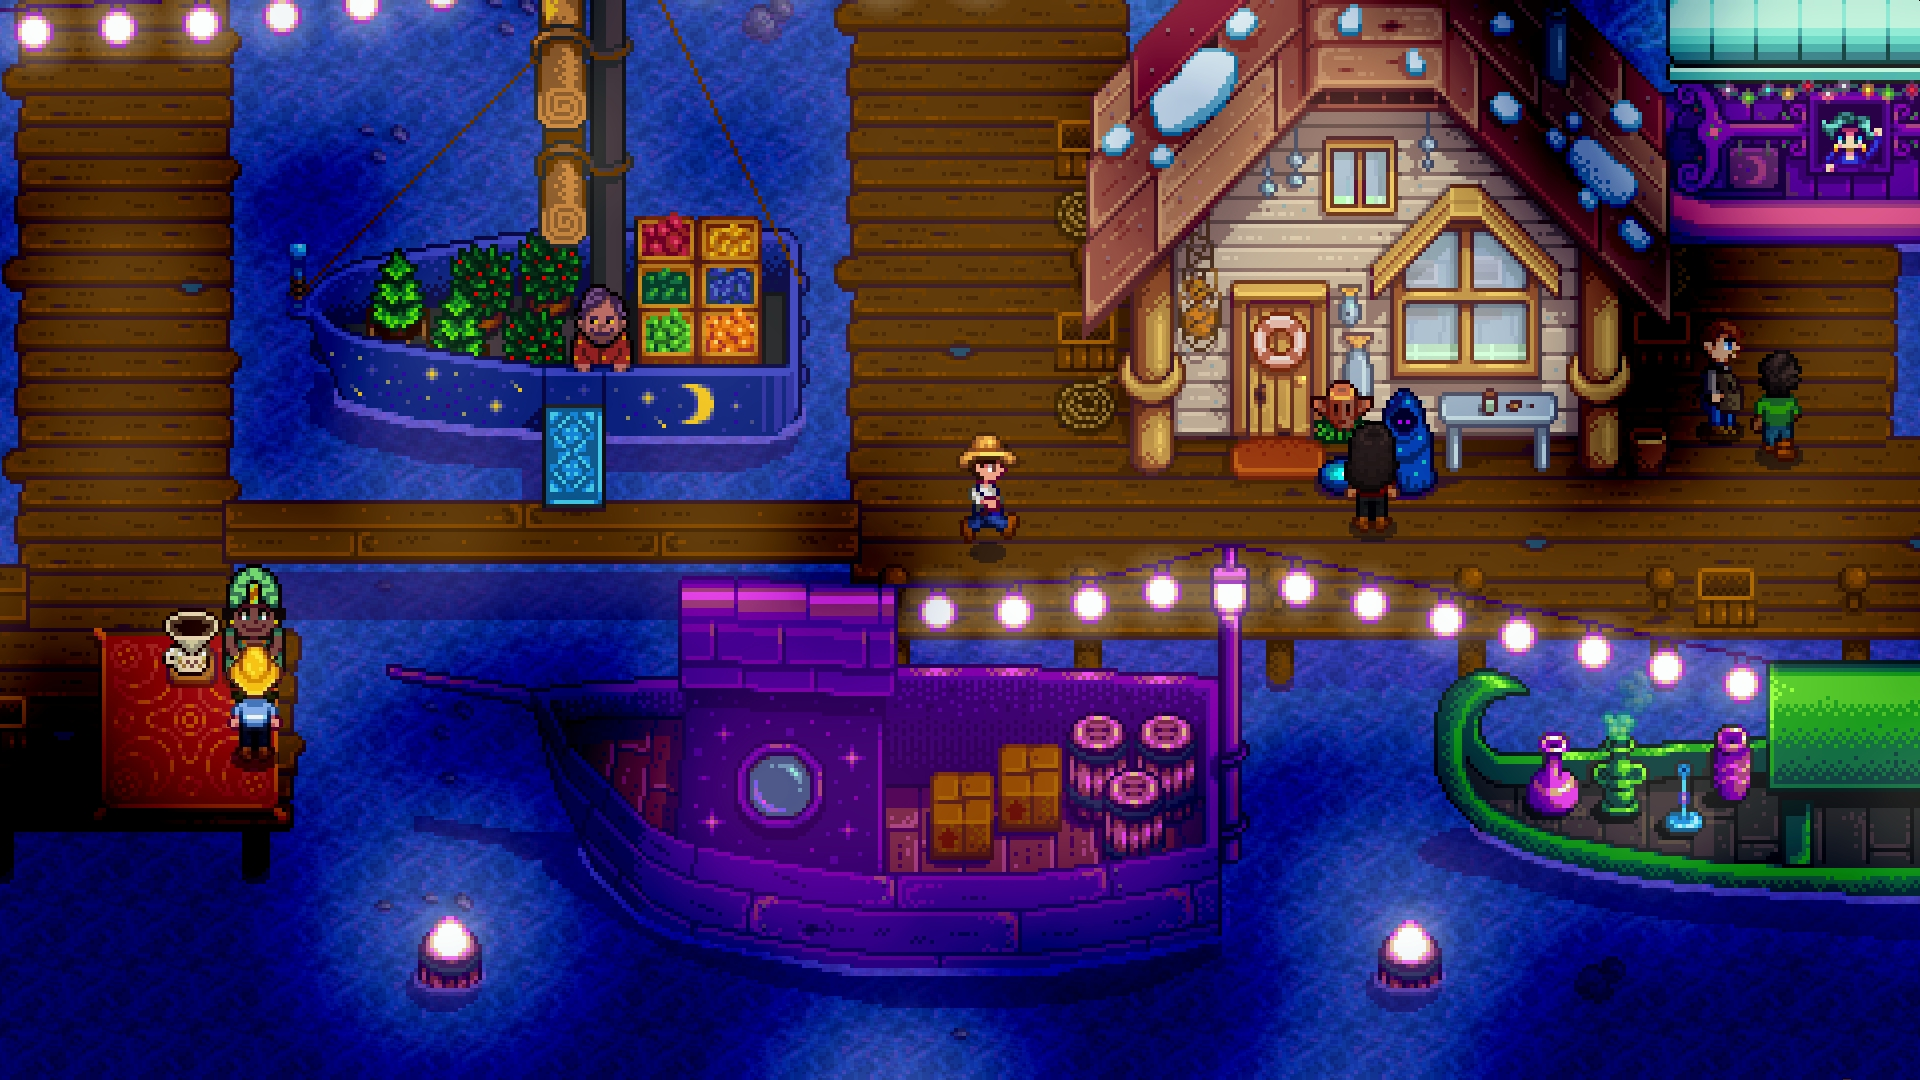 ConcernedApe's Stardew Valley Celebrates Over 10 Million Unit Sales Worldwide